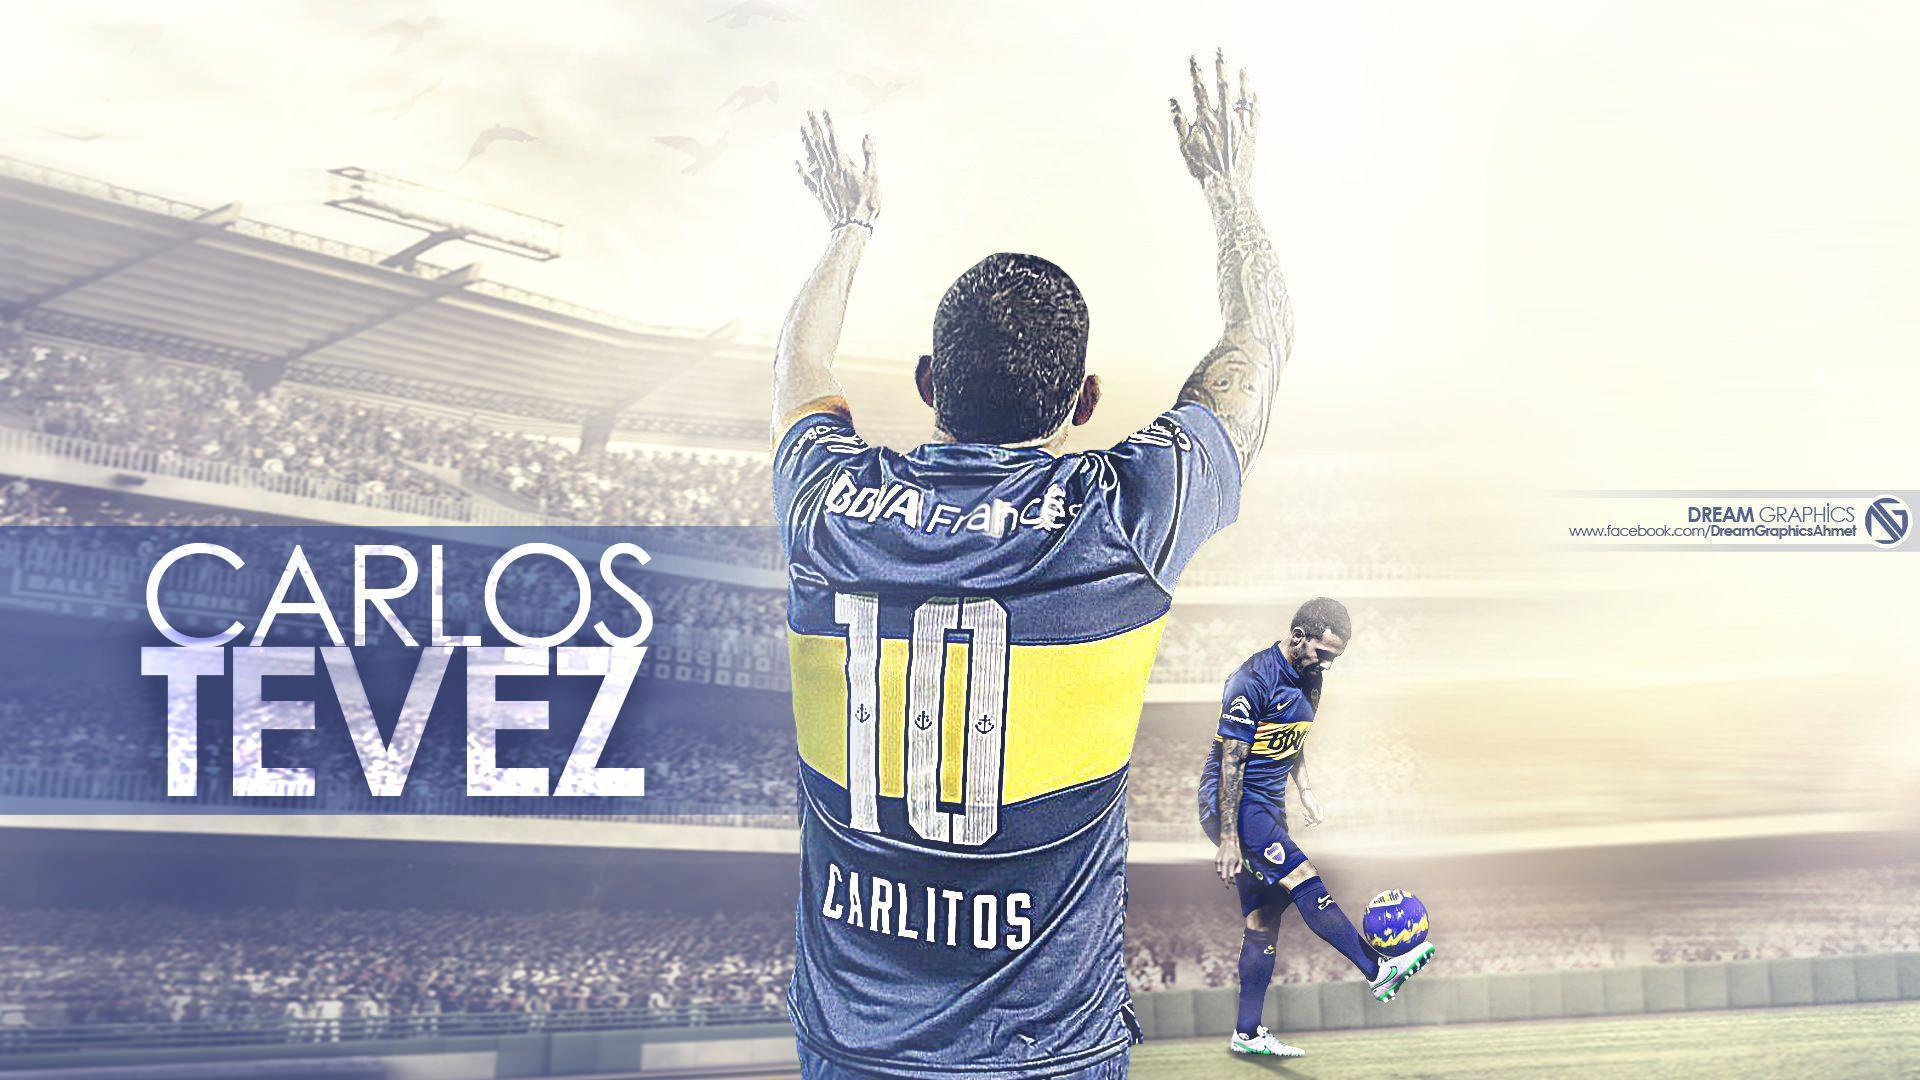 Carlos Tevez Boca Juniors Wallpaper | Football Wallpapers HD ...